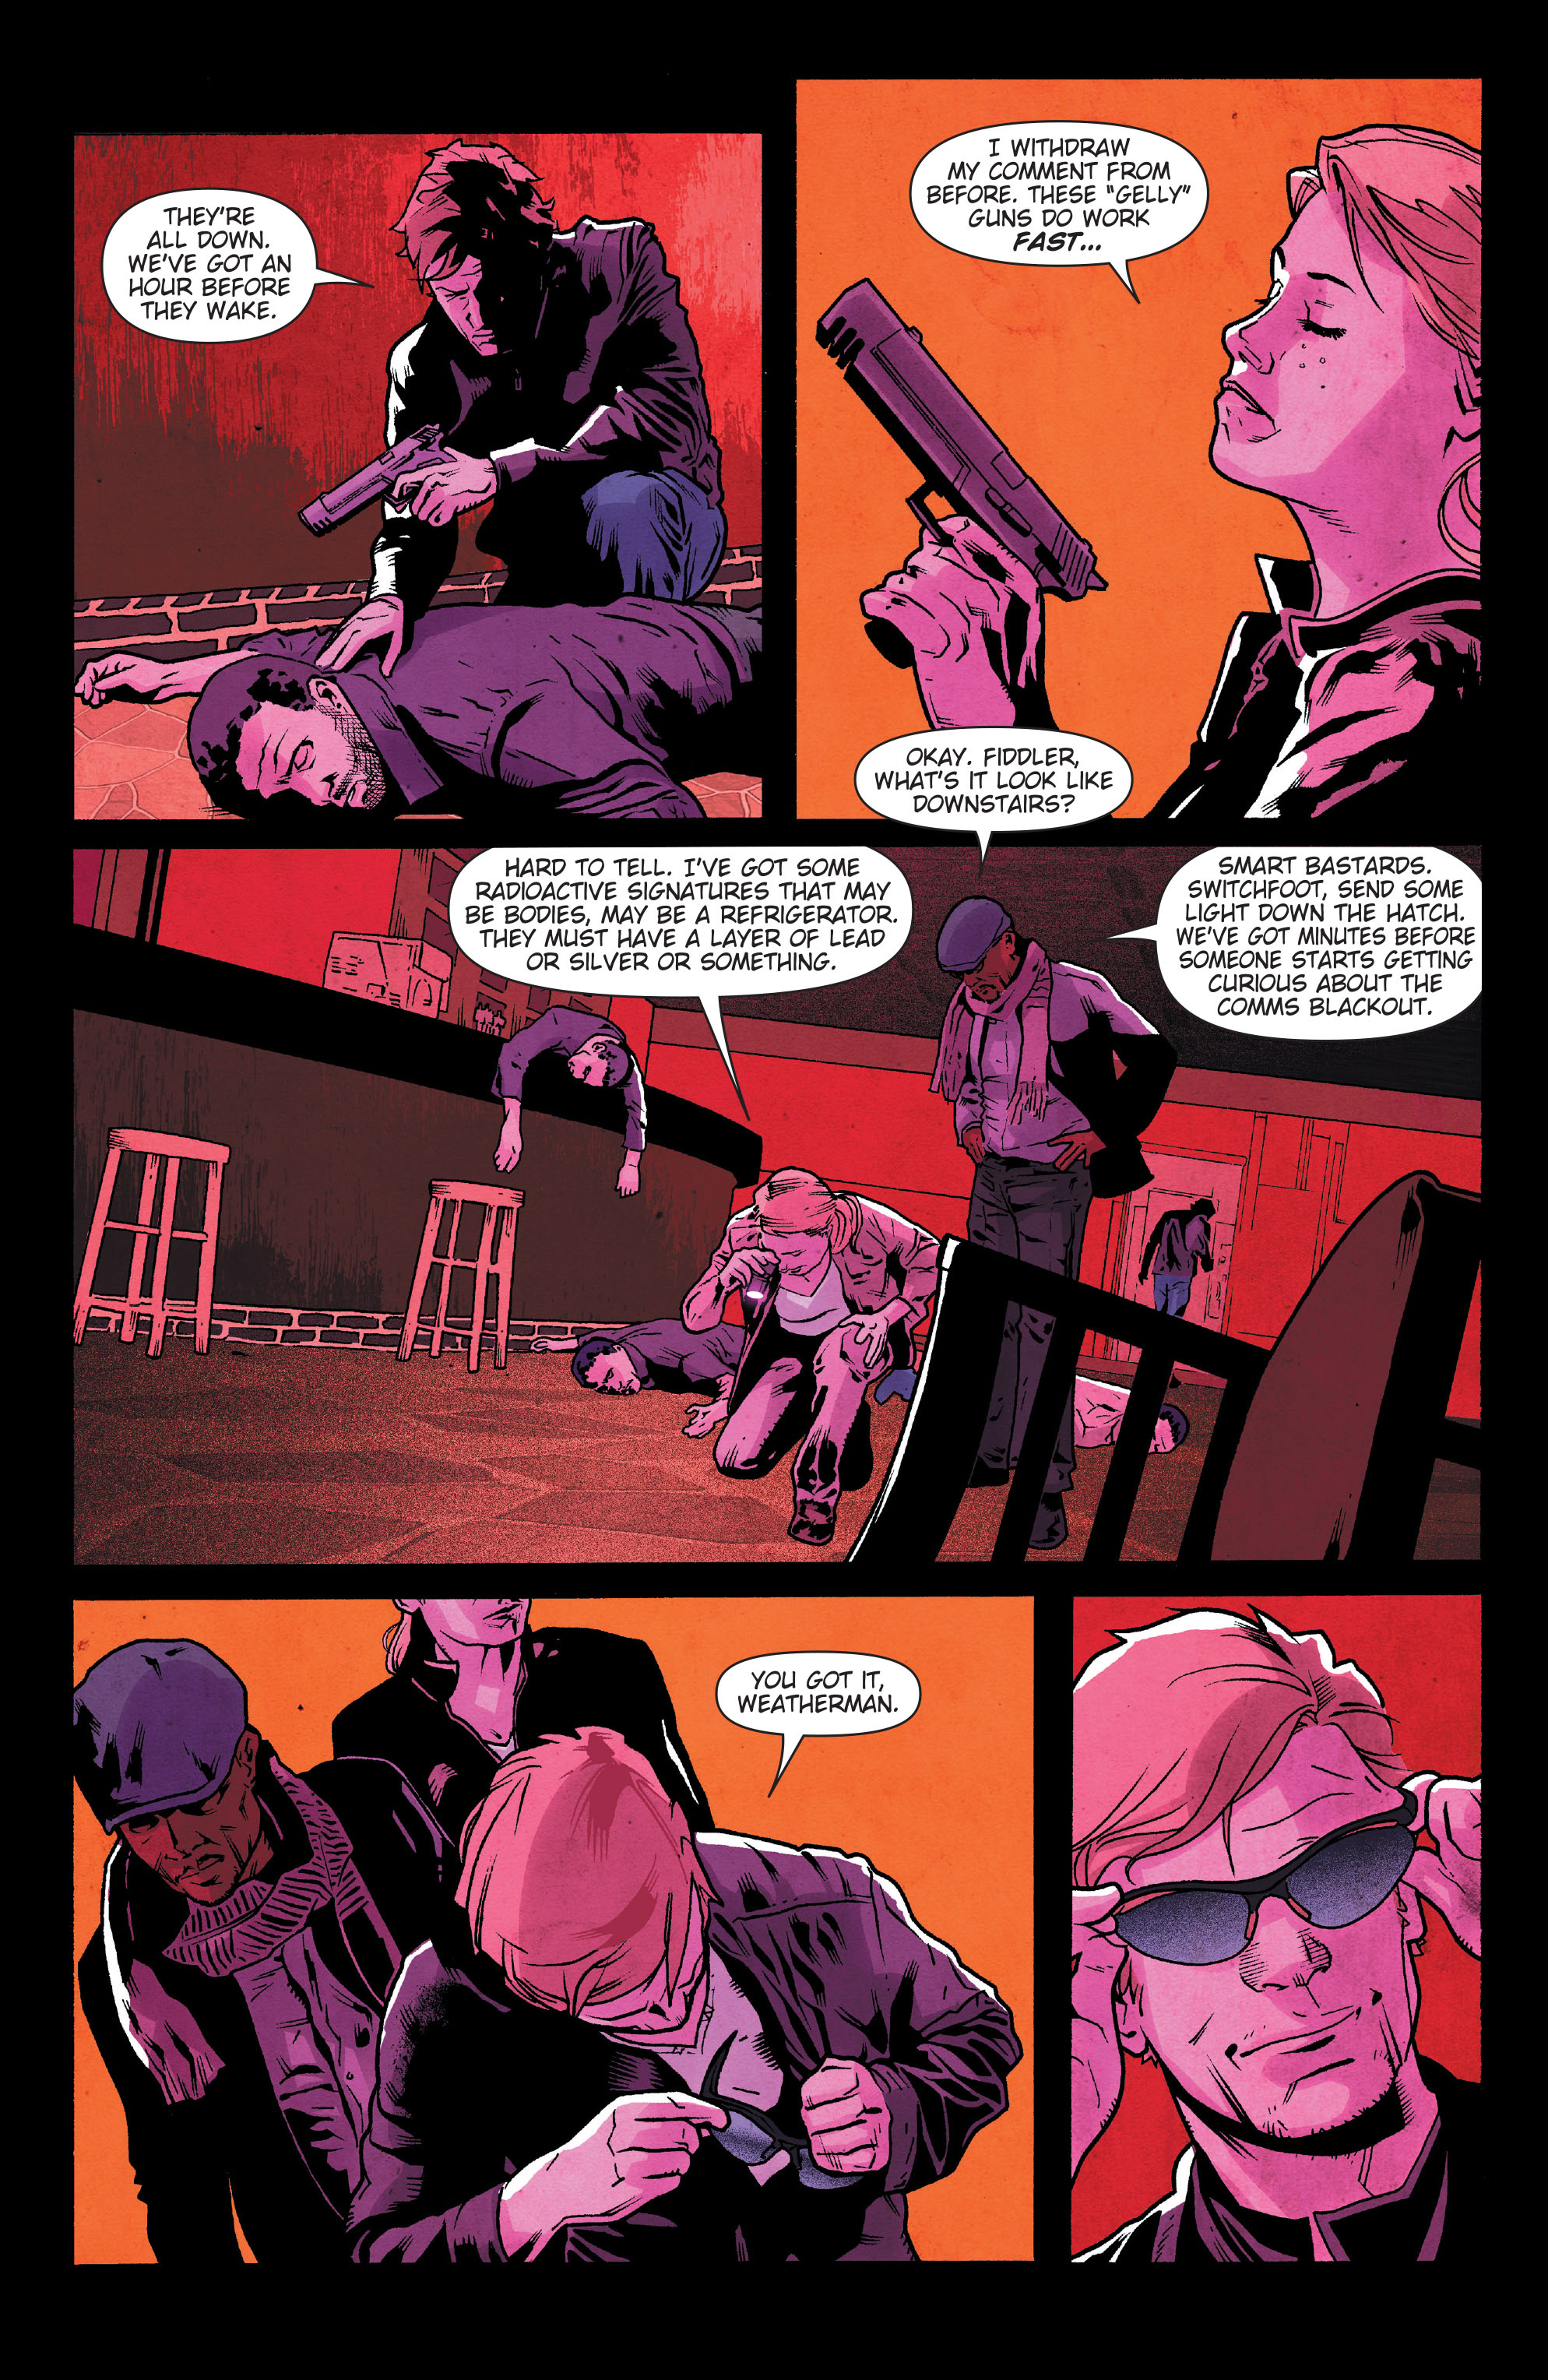 Read online The Activity comic -  Issue #2 - 11